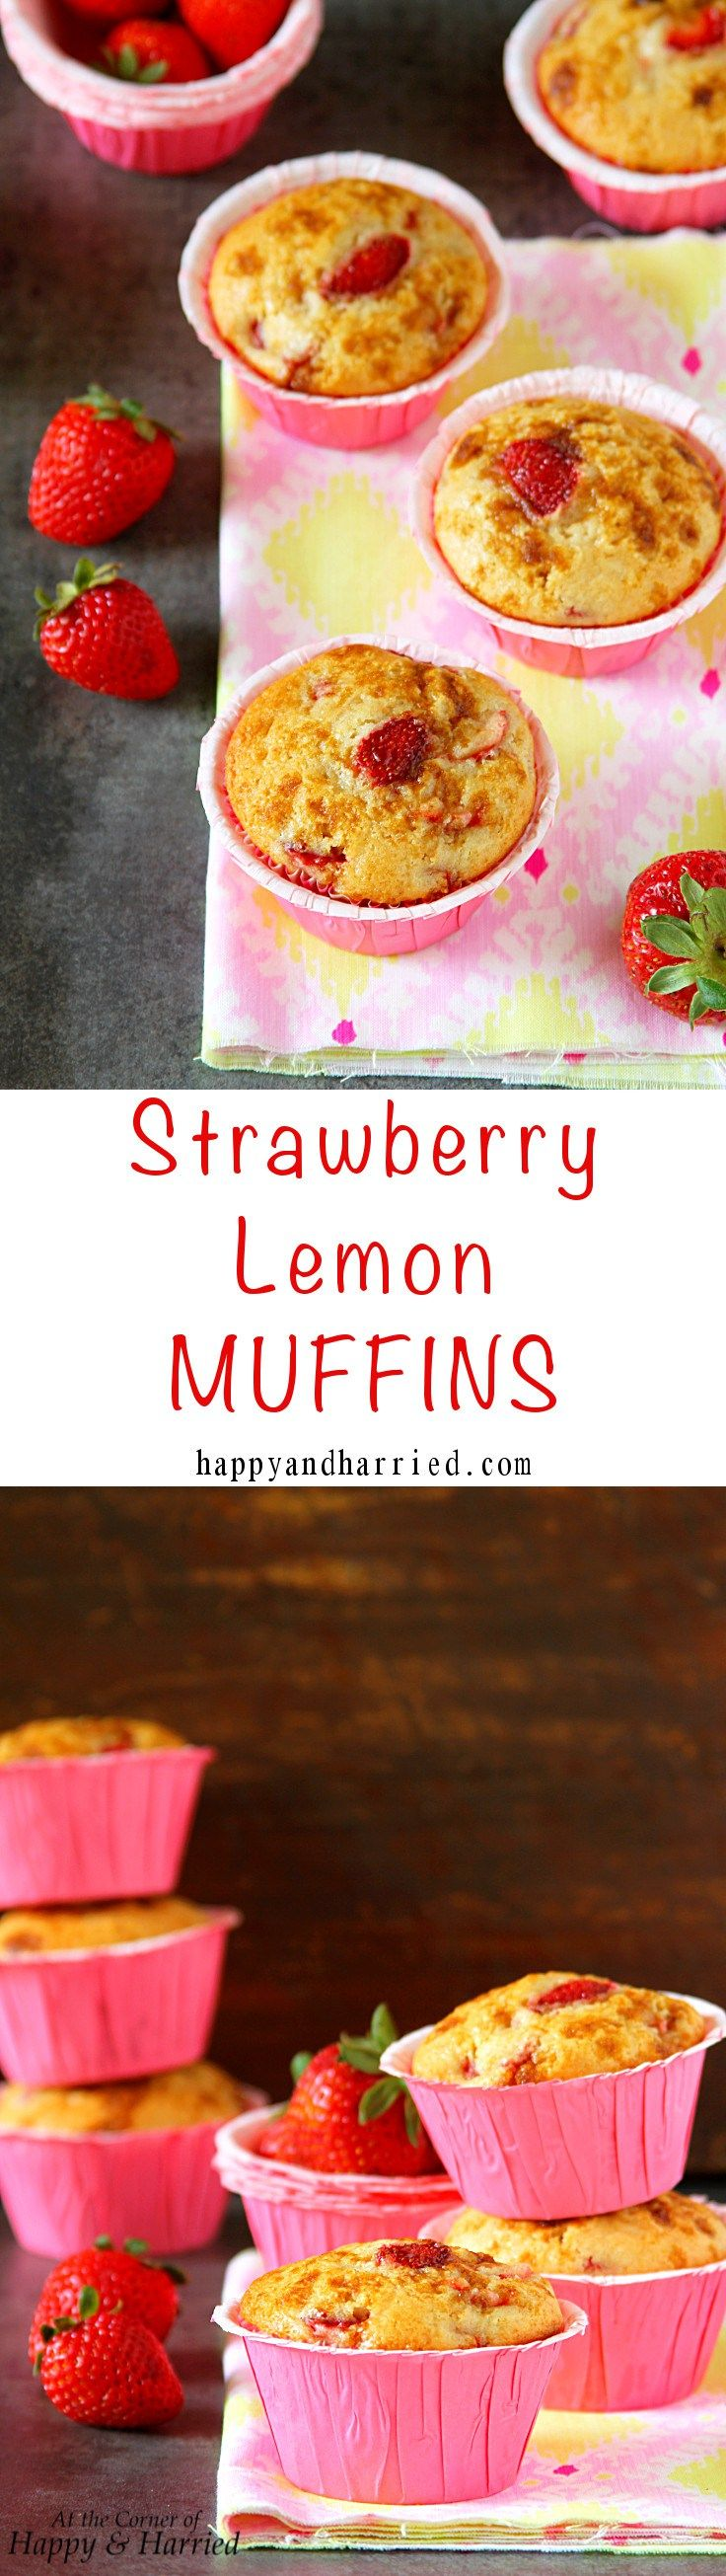 STRAWBERRY LEMON MUFFINS. Loaded with fresh summer strawberries, lemon juice and…